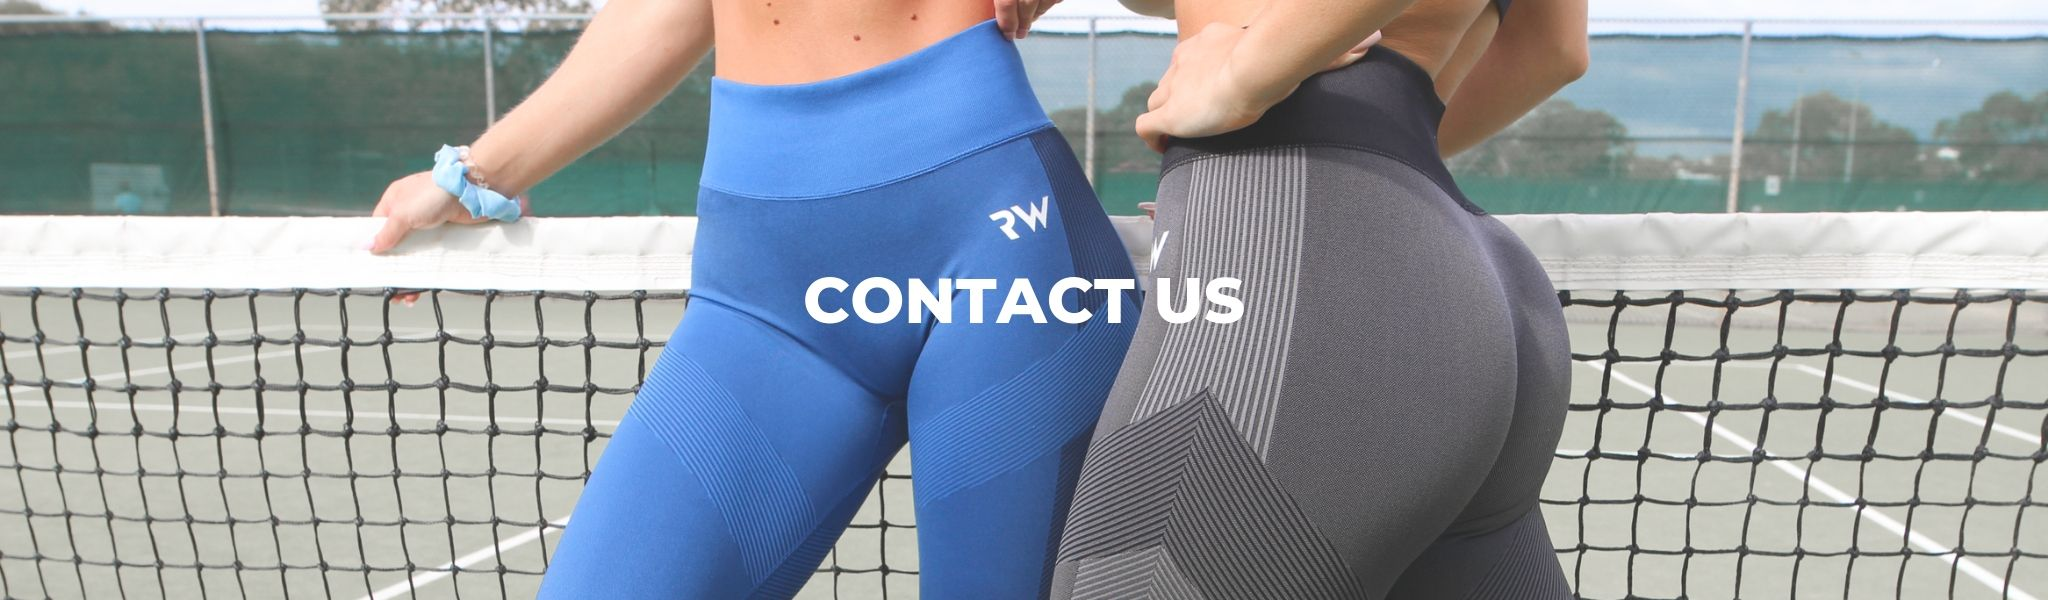 Contact us fitfashion